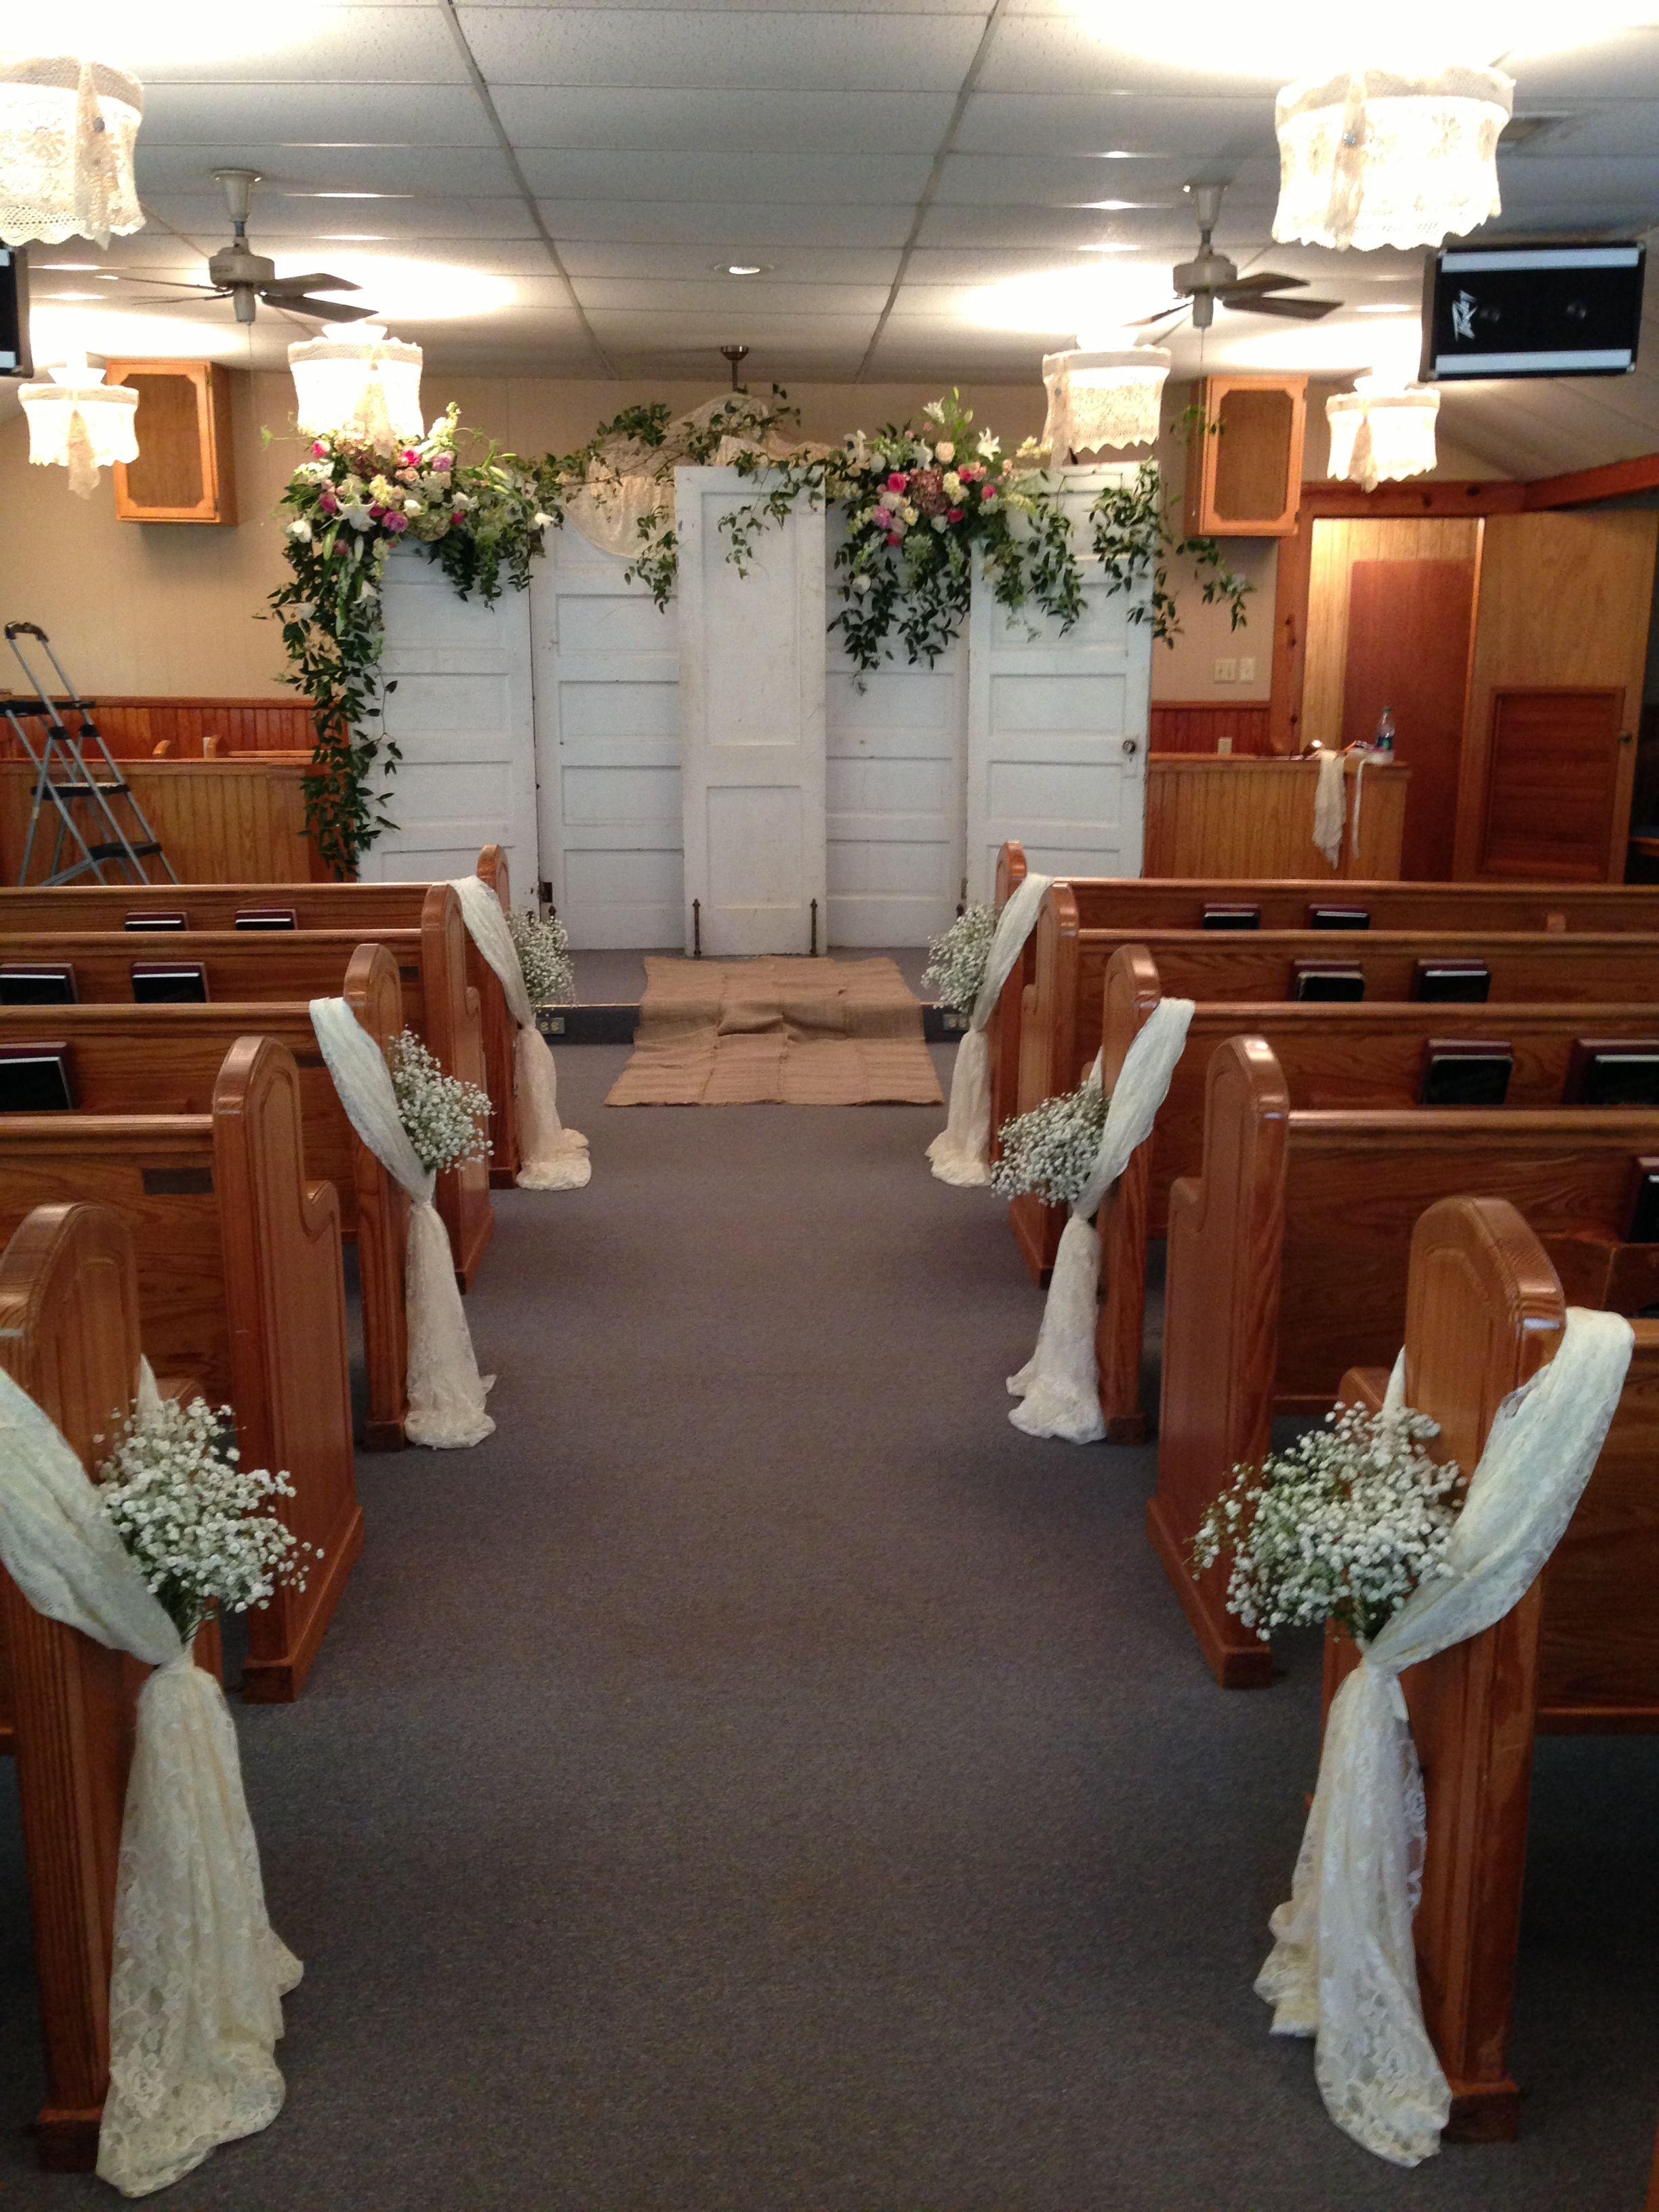 Wedding flower decoration images  I like the things on the pews that would be an easy church